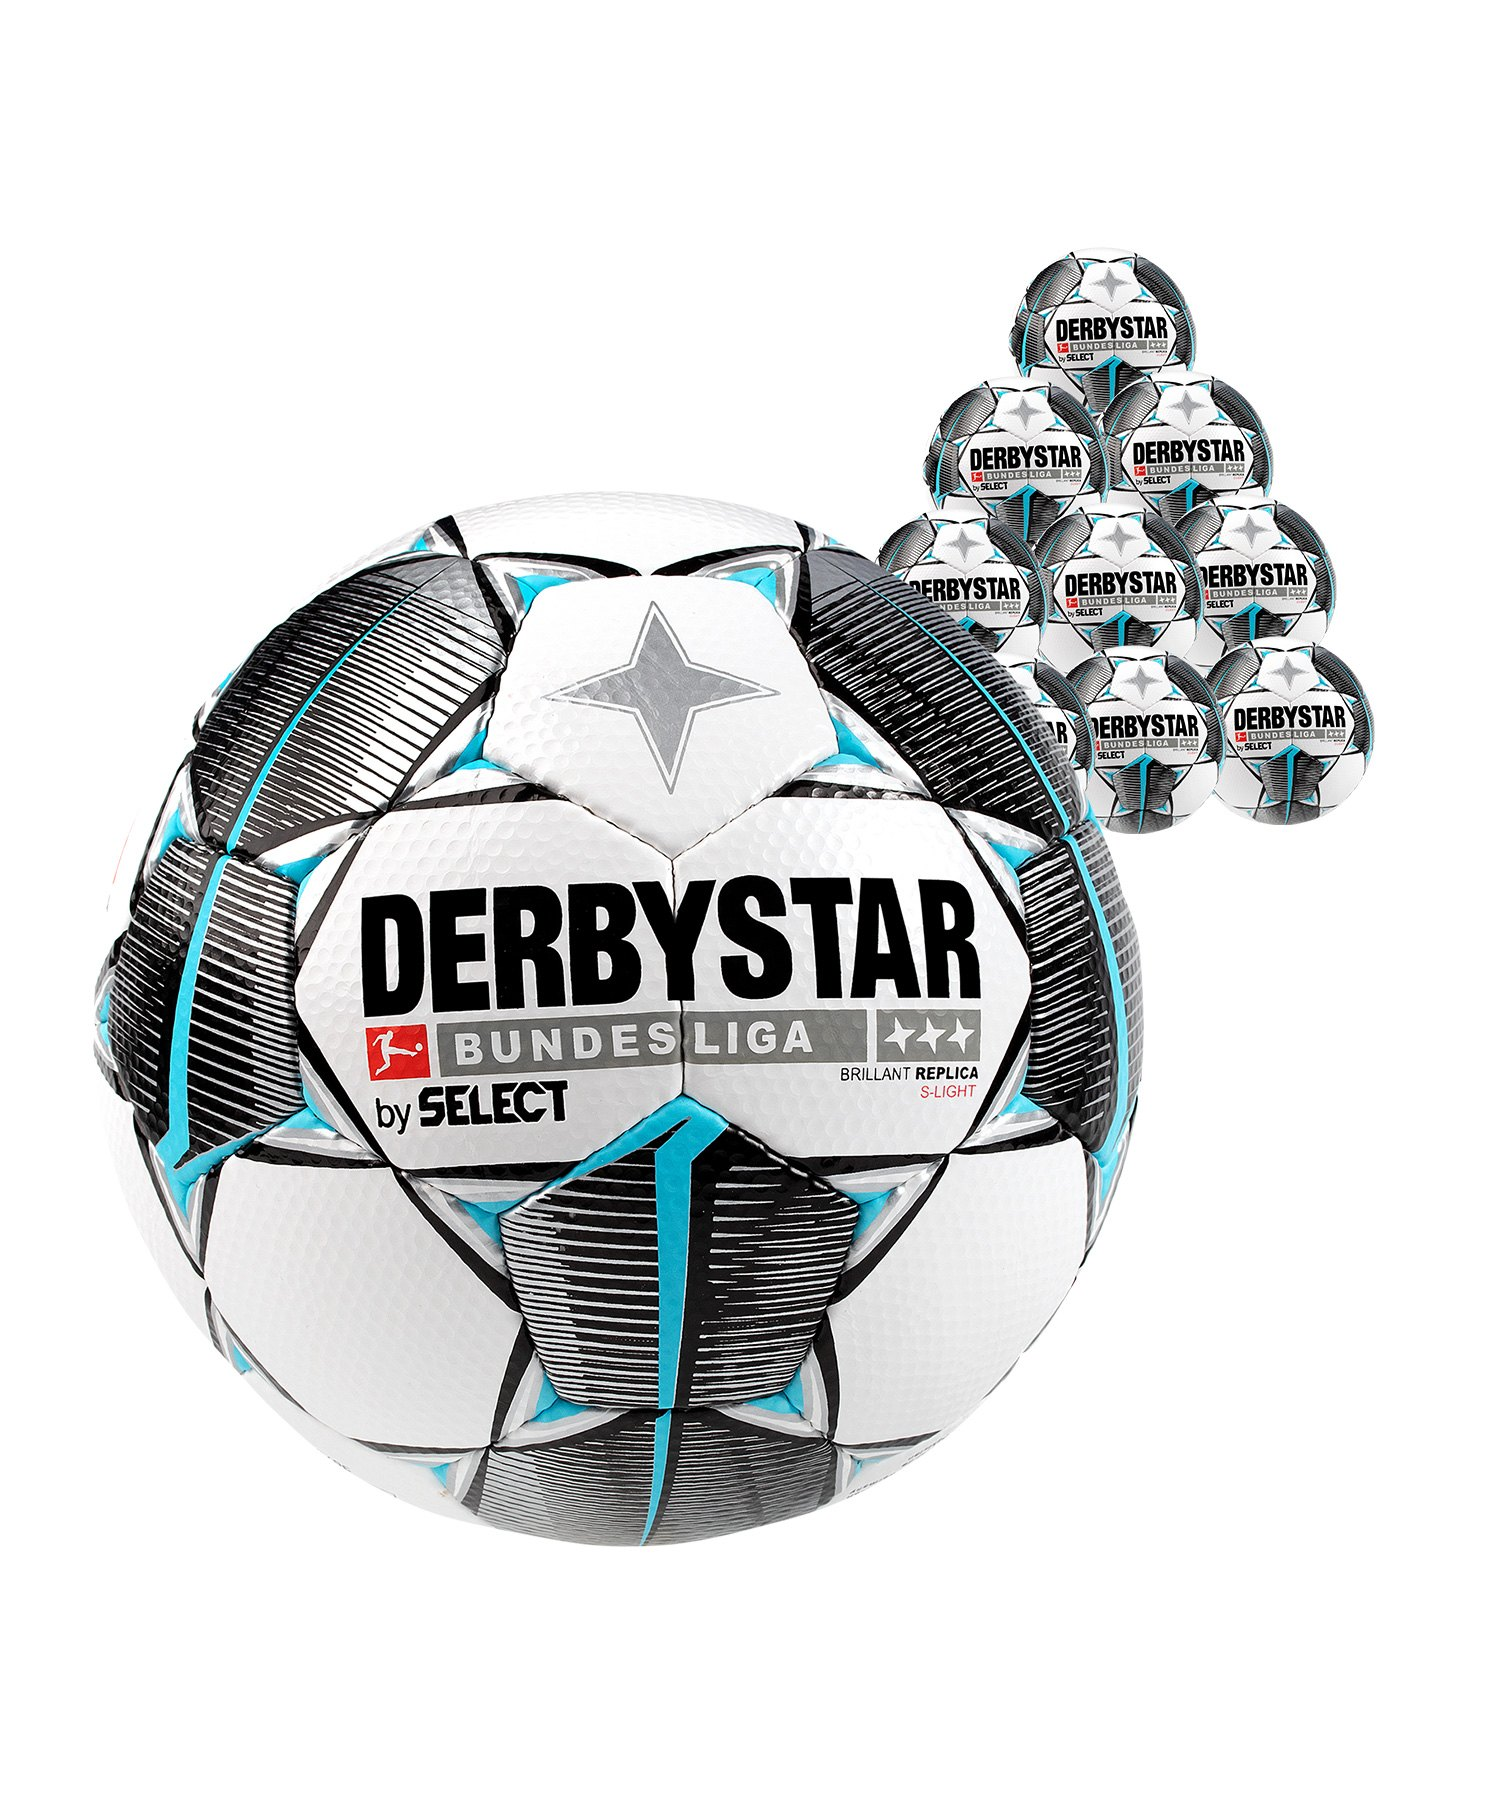 Derbystar Bundesliga Bril Replica S-Light 50x Gr.4 Weiss F019 - weiss